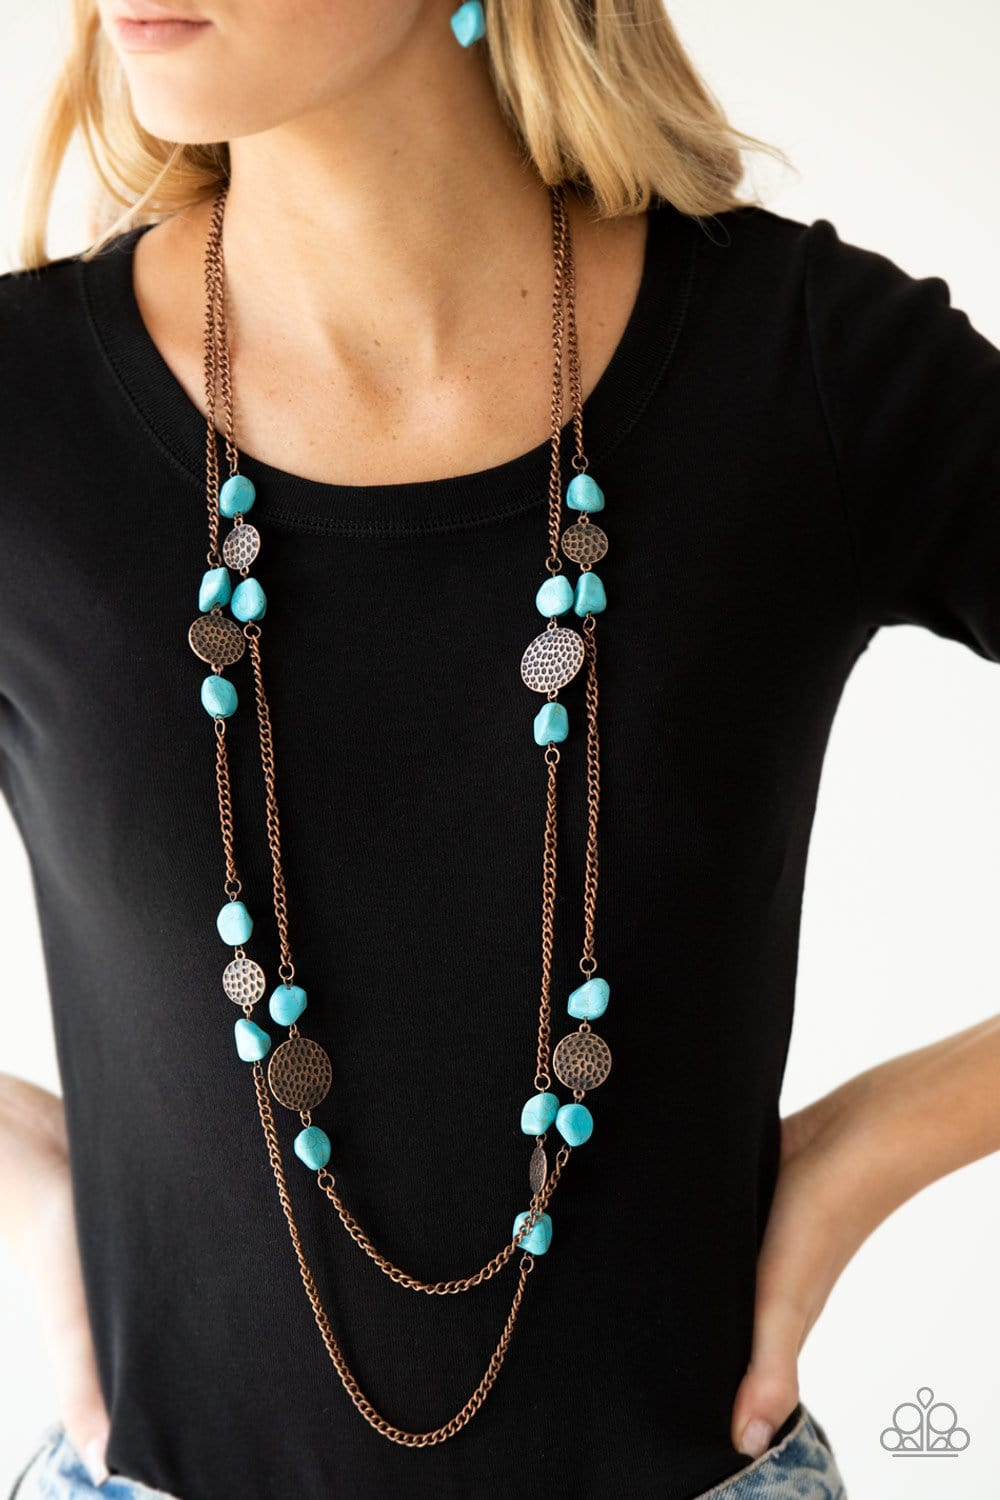 Mountain Movement - Copper: Paparazzi Accessories - Jewels N' Thingz Boutique